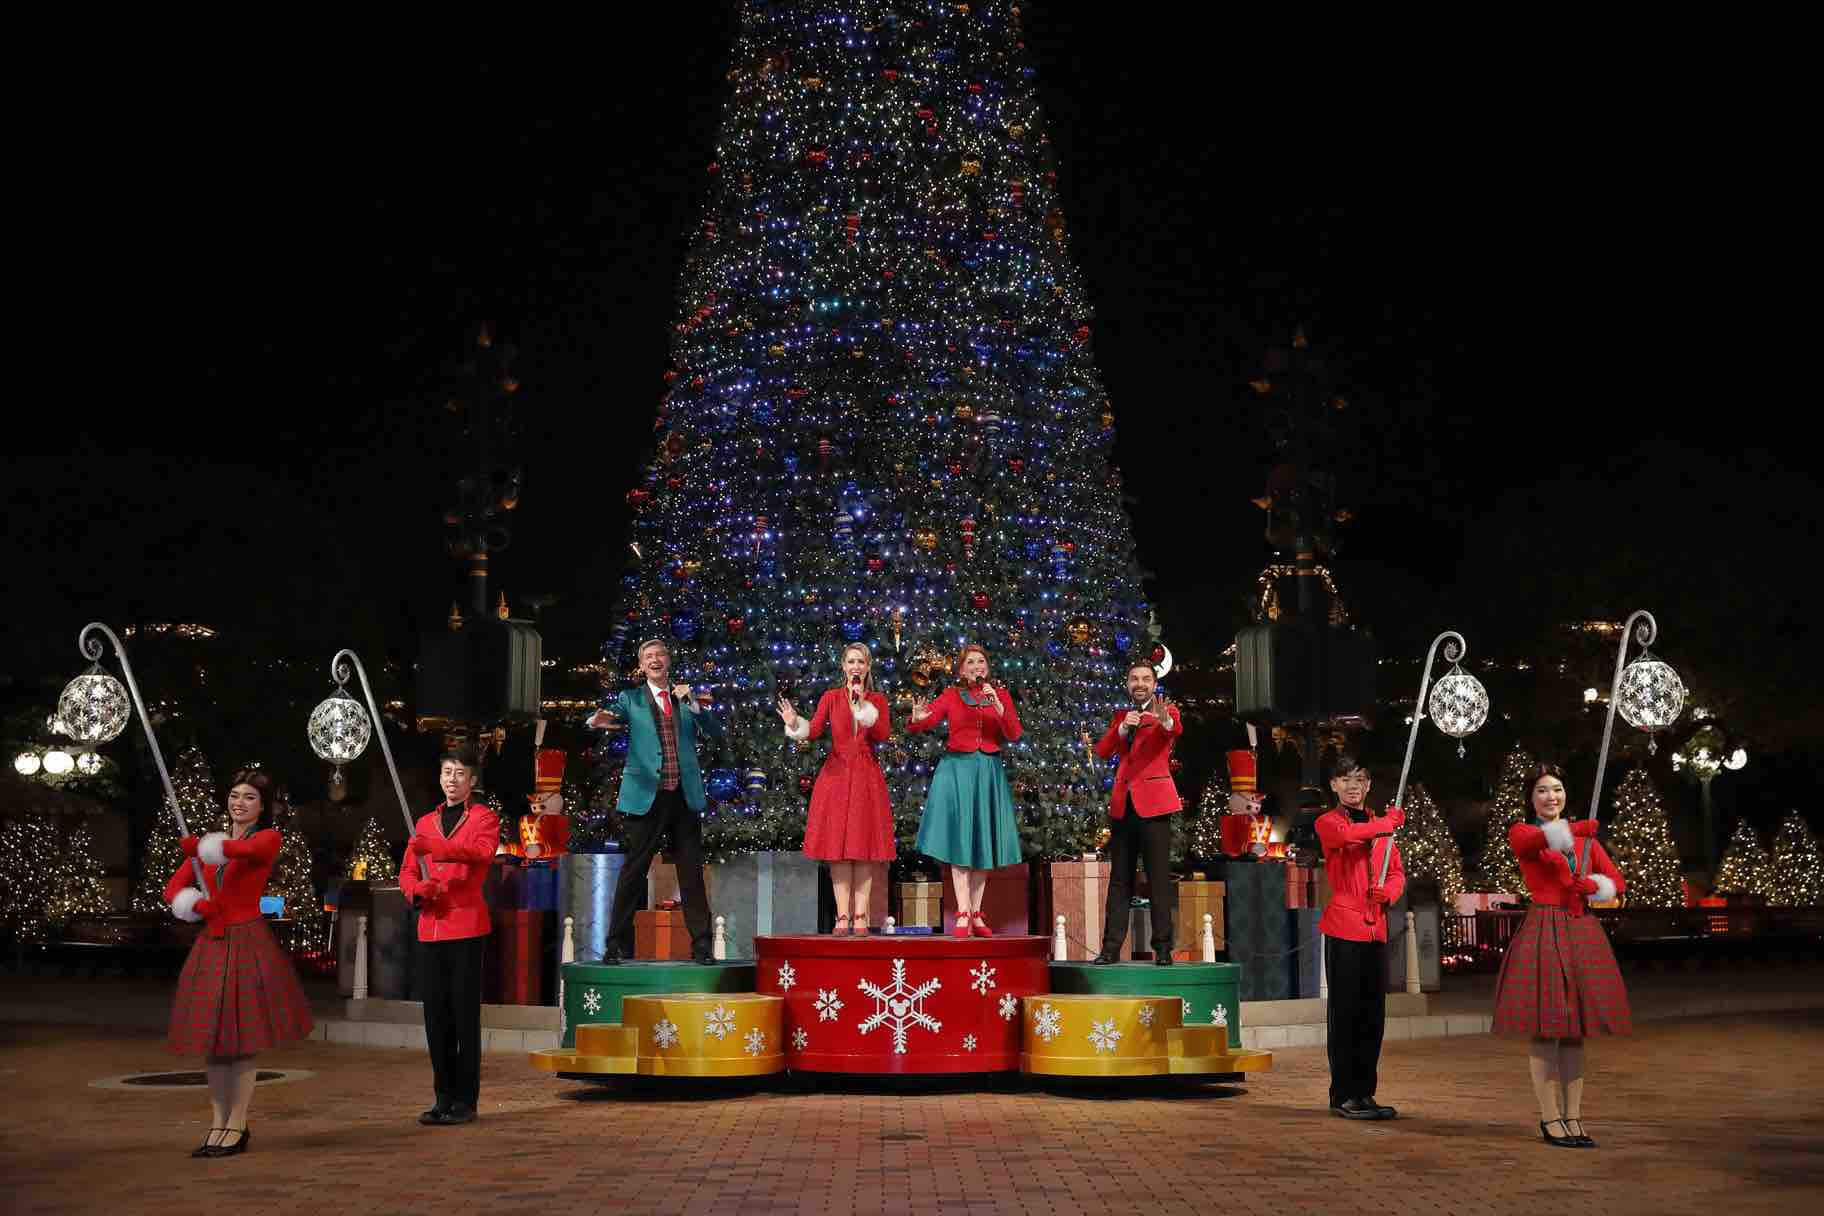 Christmas In Disneyland Hong Kong.Hong Kong Disneyland Christmas Celebration Woos Singapore